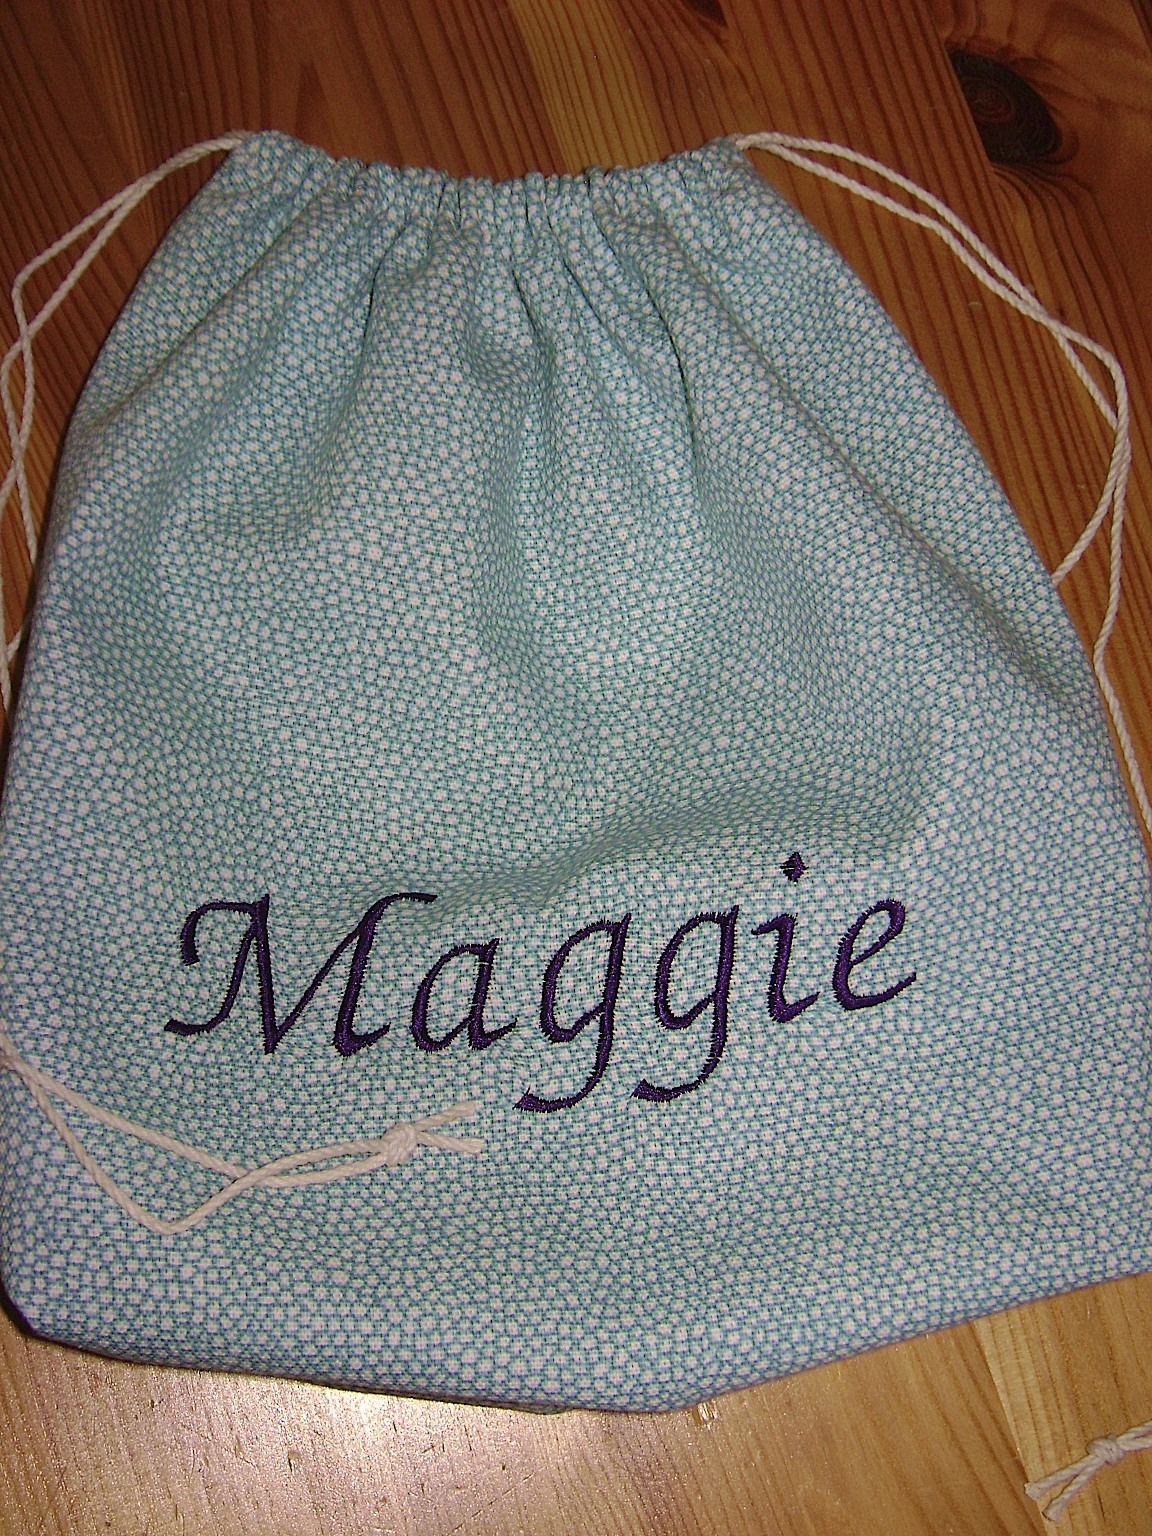 Hanging On By A Thread: Get A Grip-Drawstring Bag Tutorial